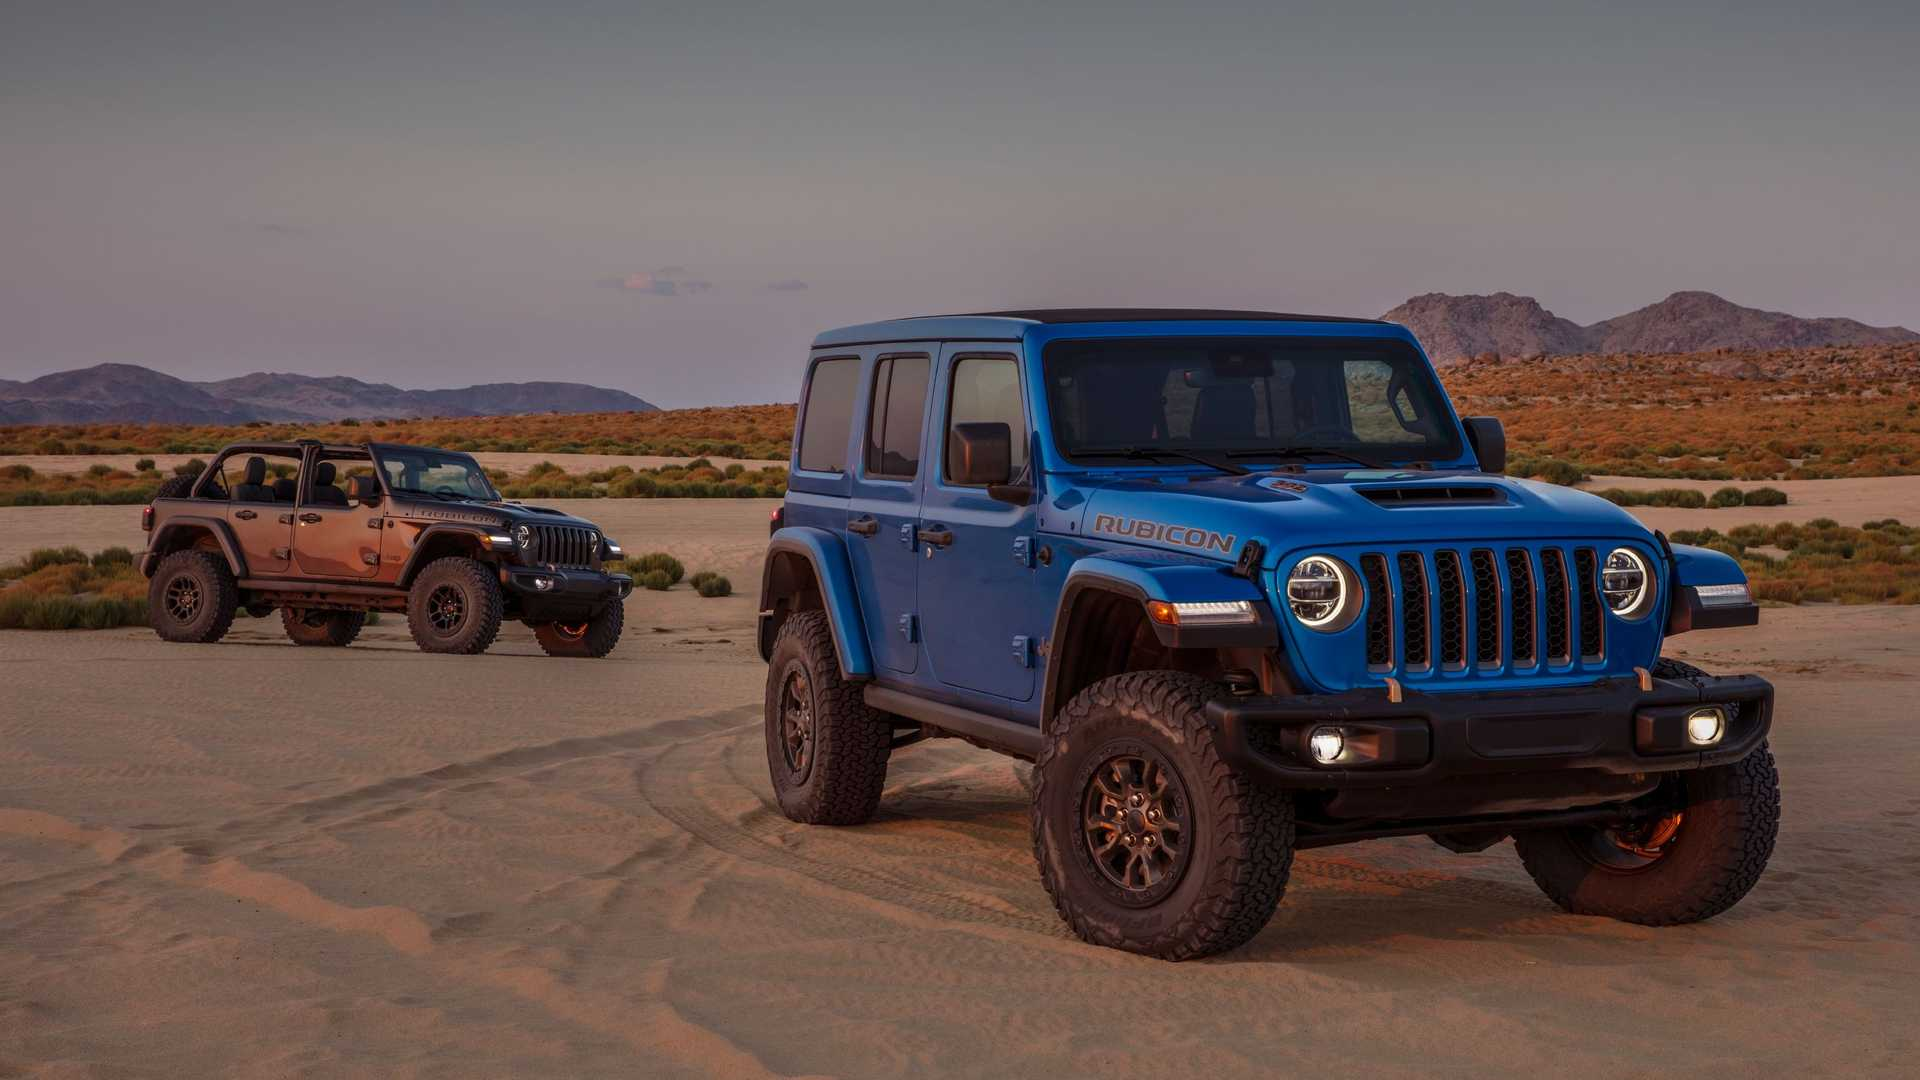 2021-jeep-wrangler-rubicon-392-front-view